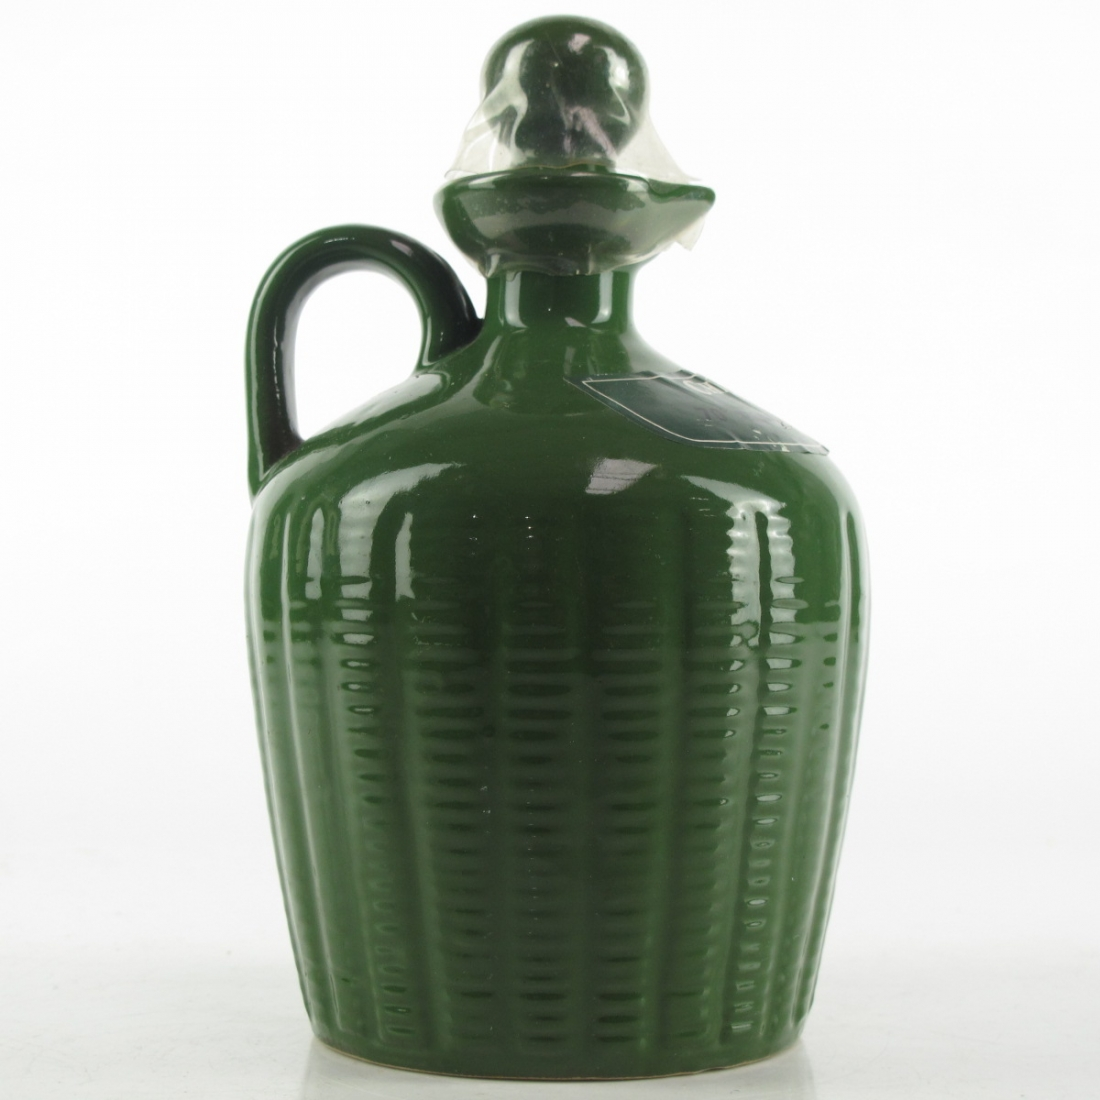 Chequers 1970s Decanter